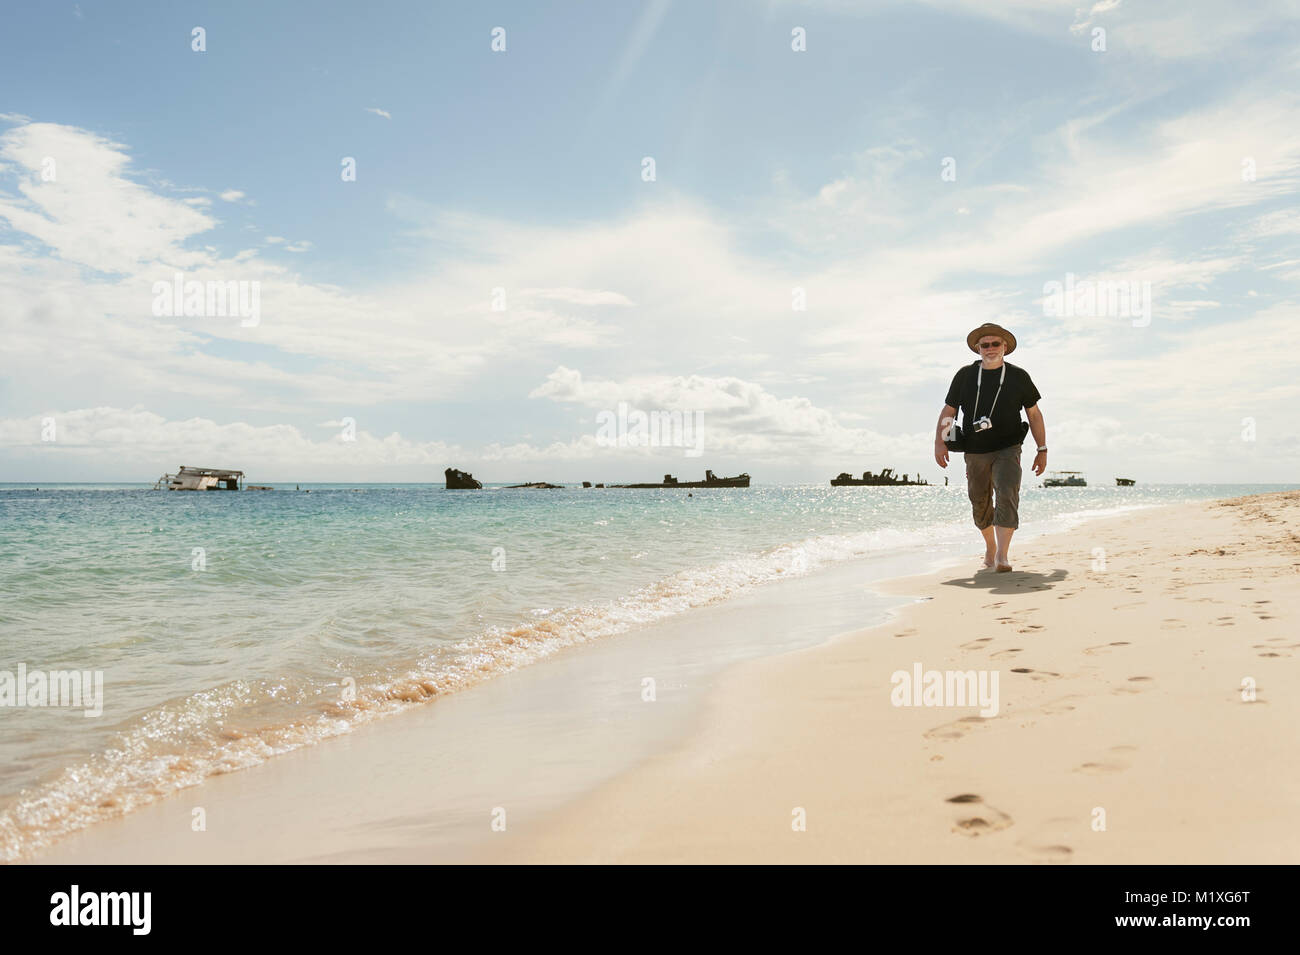 Mature woman walking on beach in Australia - Stock Image